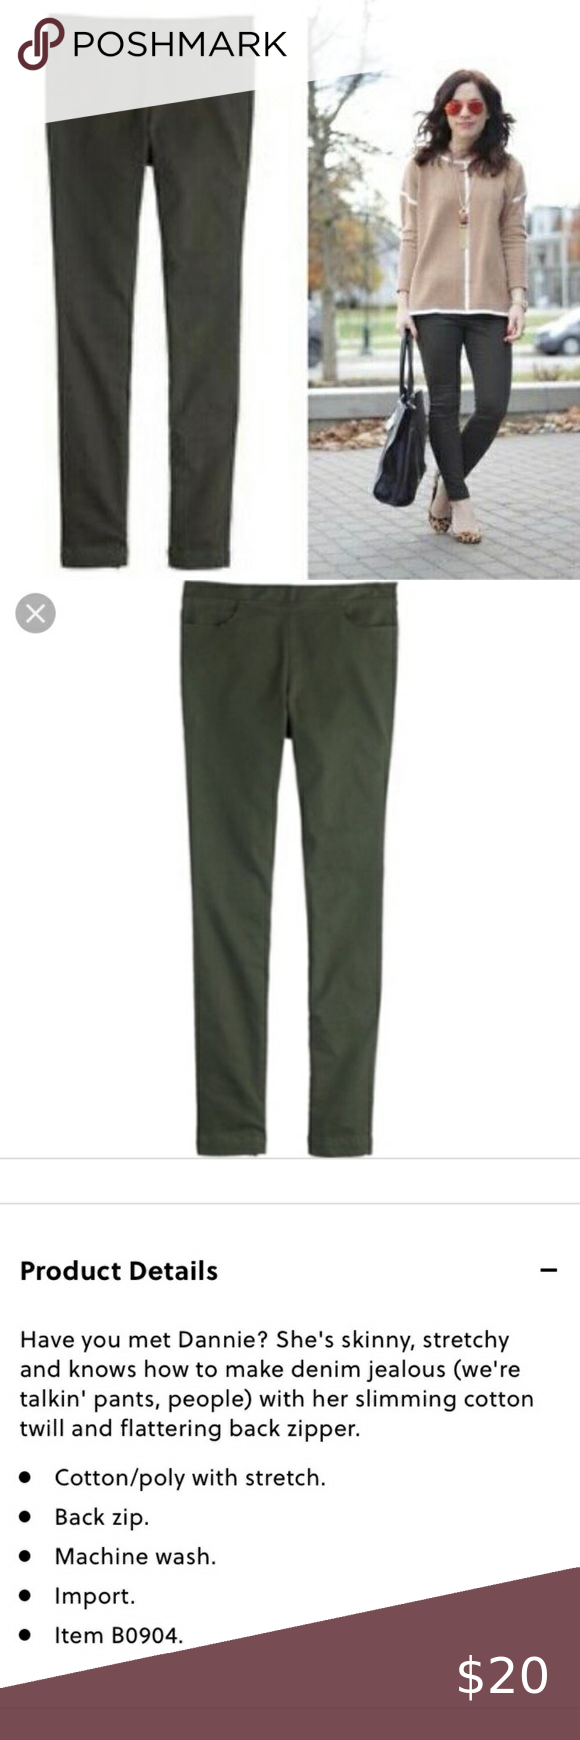 J. Crew Dannie Olive Green Skinny Pant Back Zip J. Crew Style B0904 Dannie skinny pants Back exposed zipper  Olive Green  Stretchy  Size 2 Excellent preowned condition J. Crew Pants Skinny